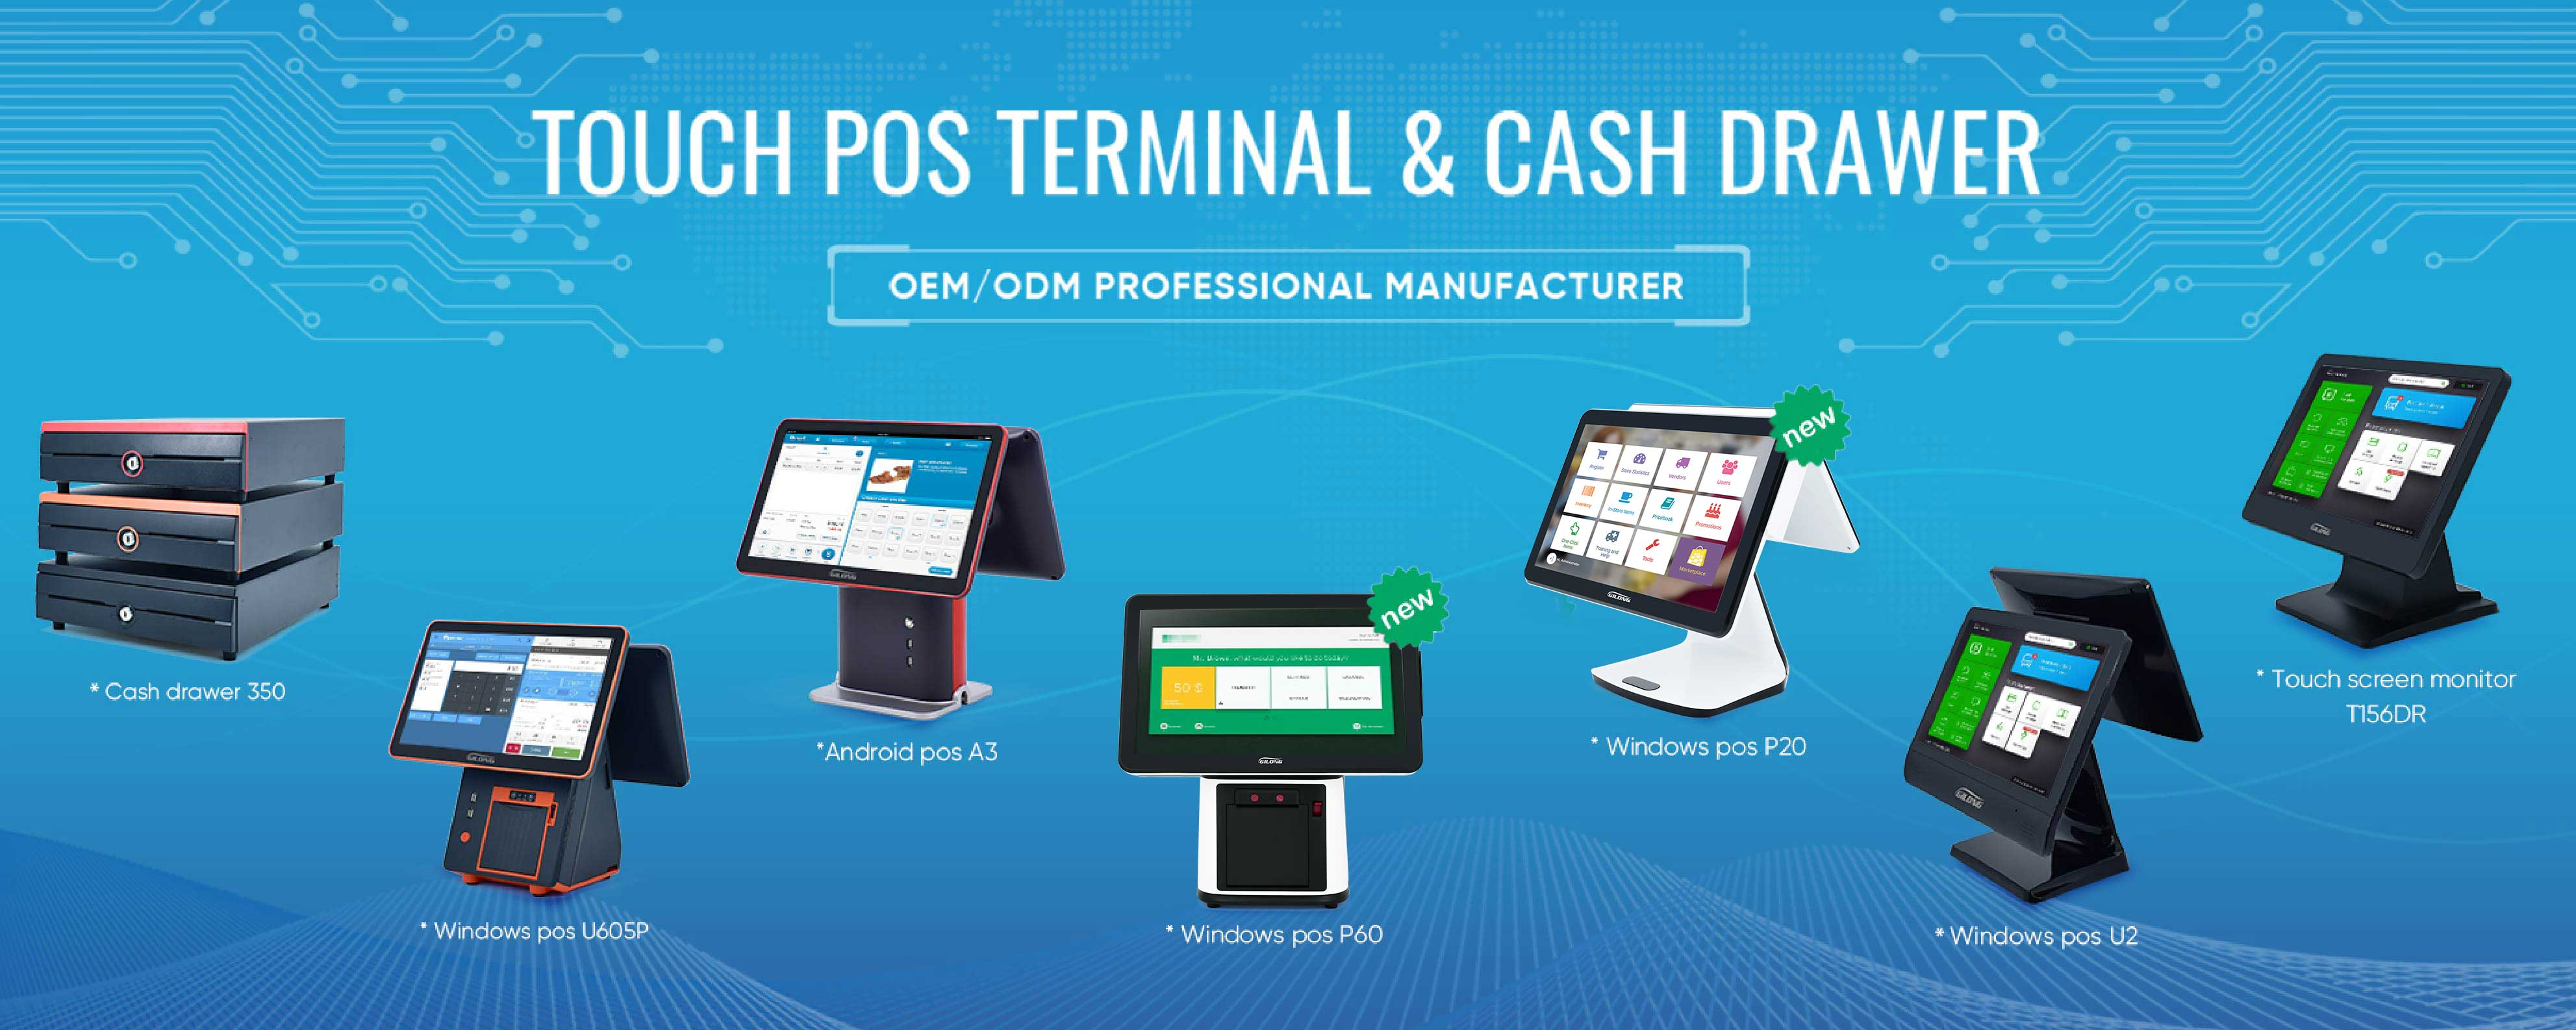 Touch POS Terminal & Cash Drawer